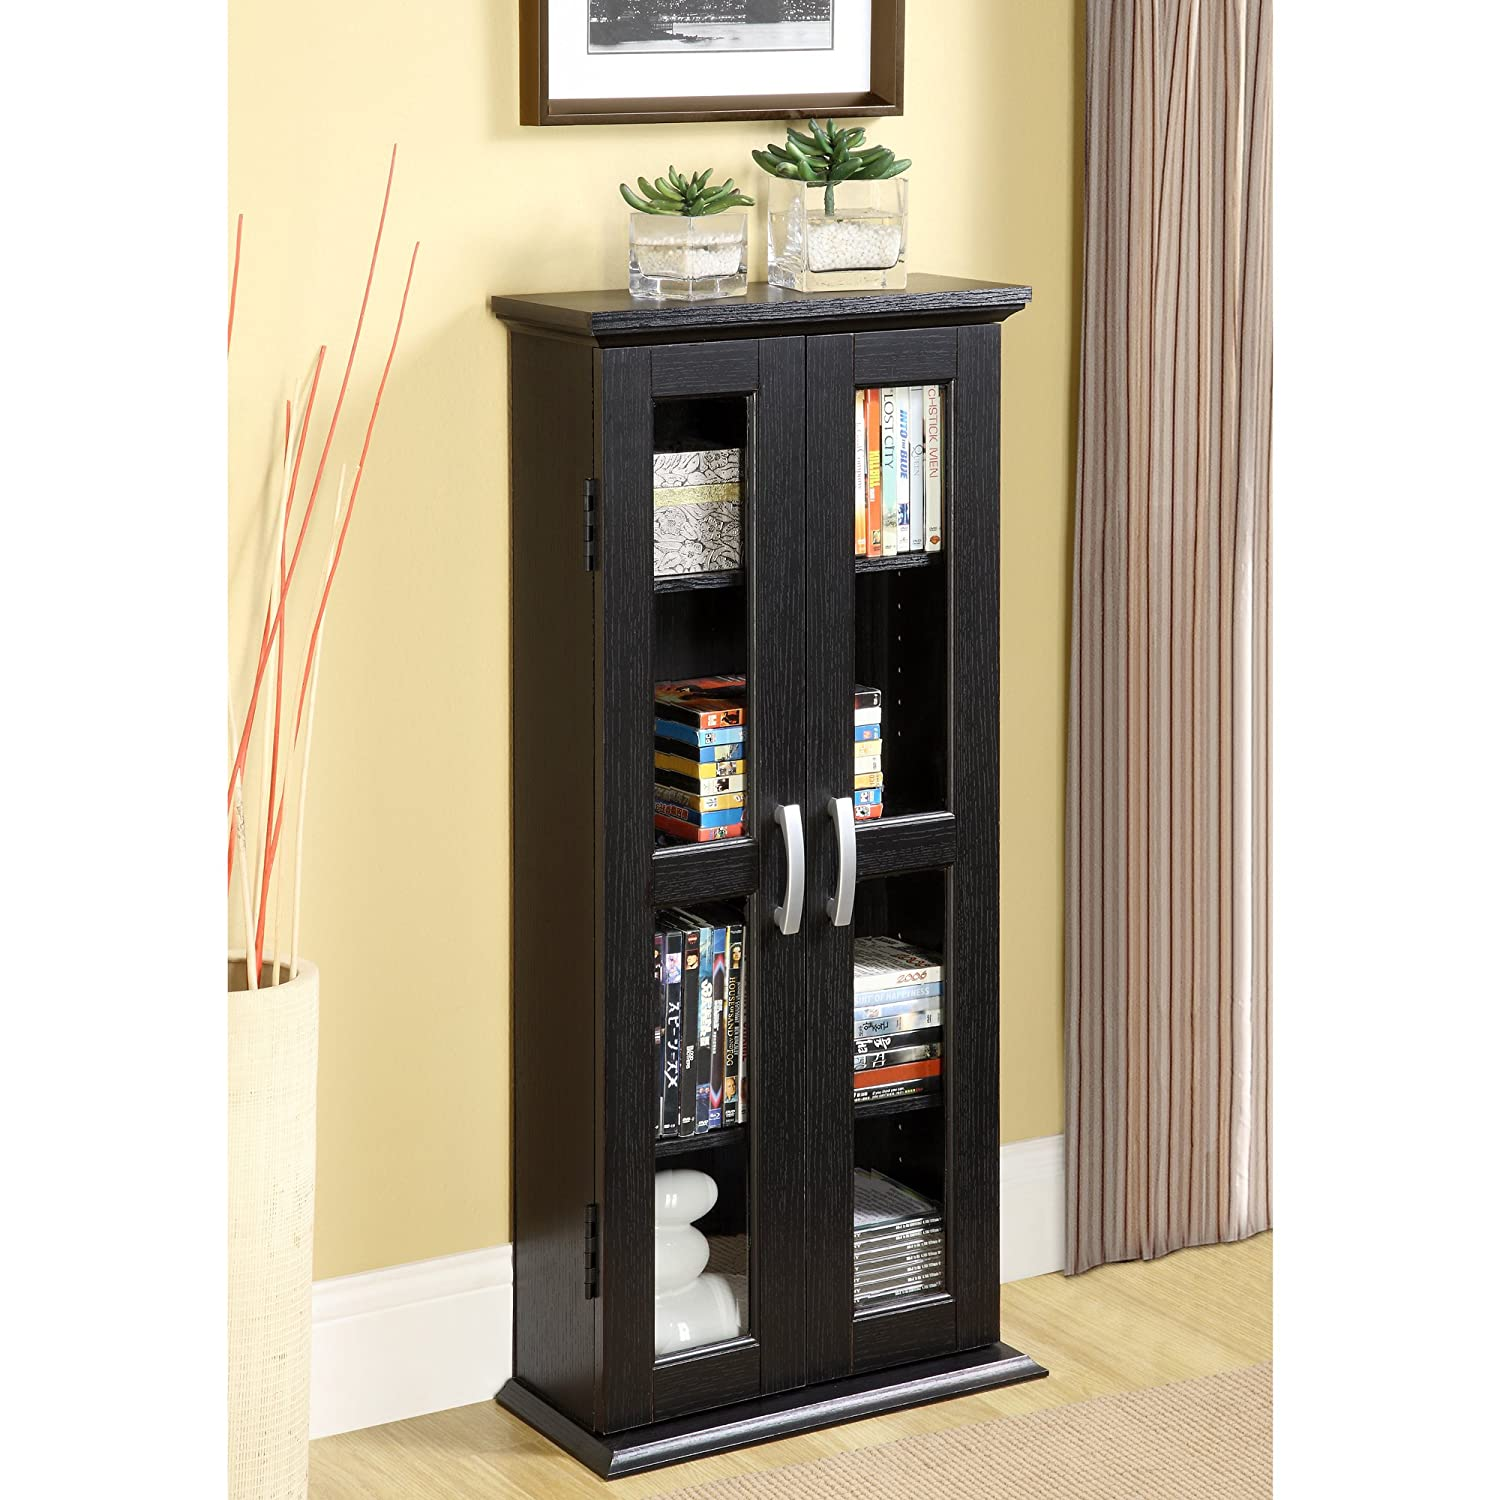 amazon com walker edison 41 media storage cabinet black kitchen rh amazon com cd dvd storage cabinets wood Large DVD Storage Cabinet